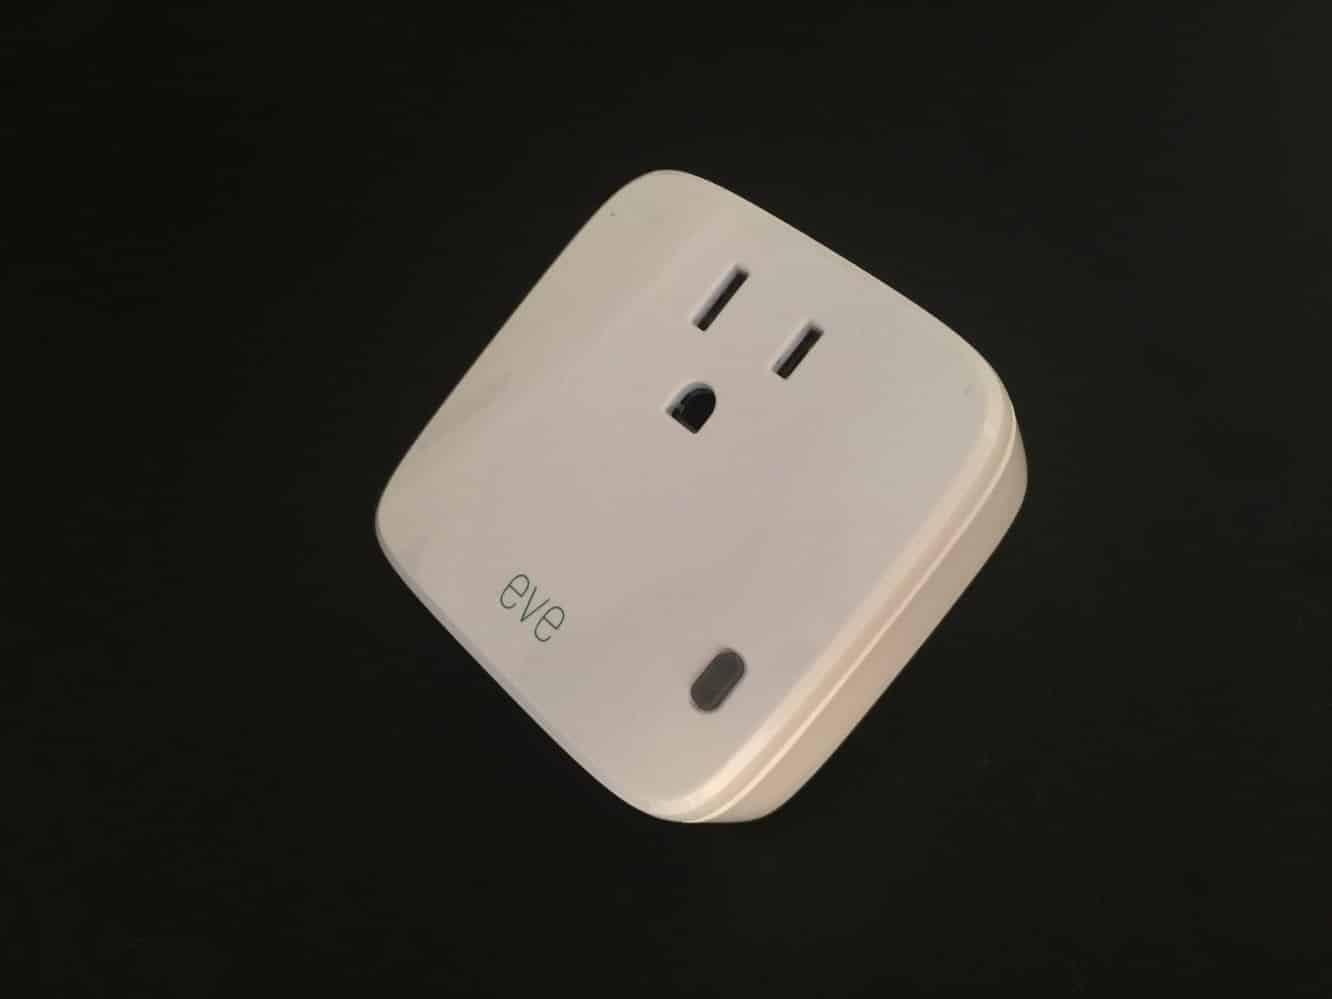 Review: Elgato Eve Energy Switch & Power Meter